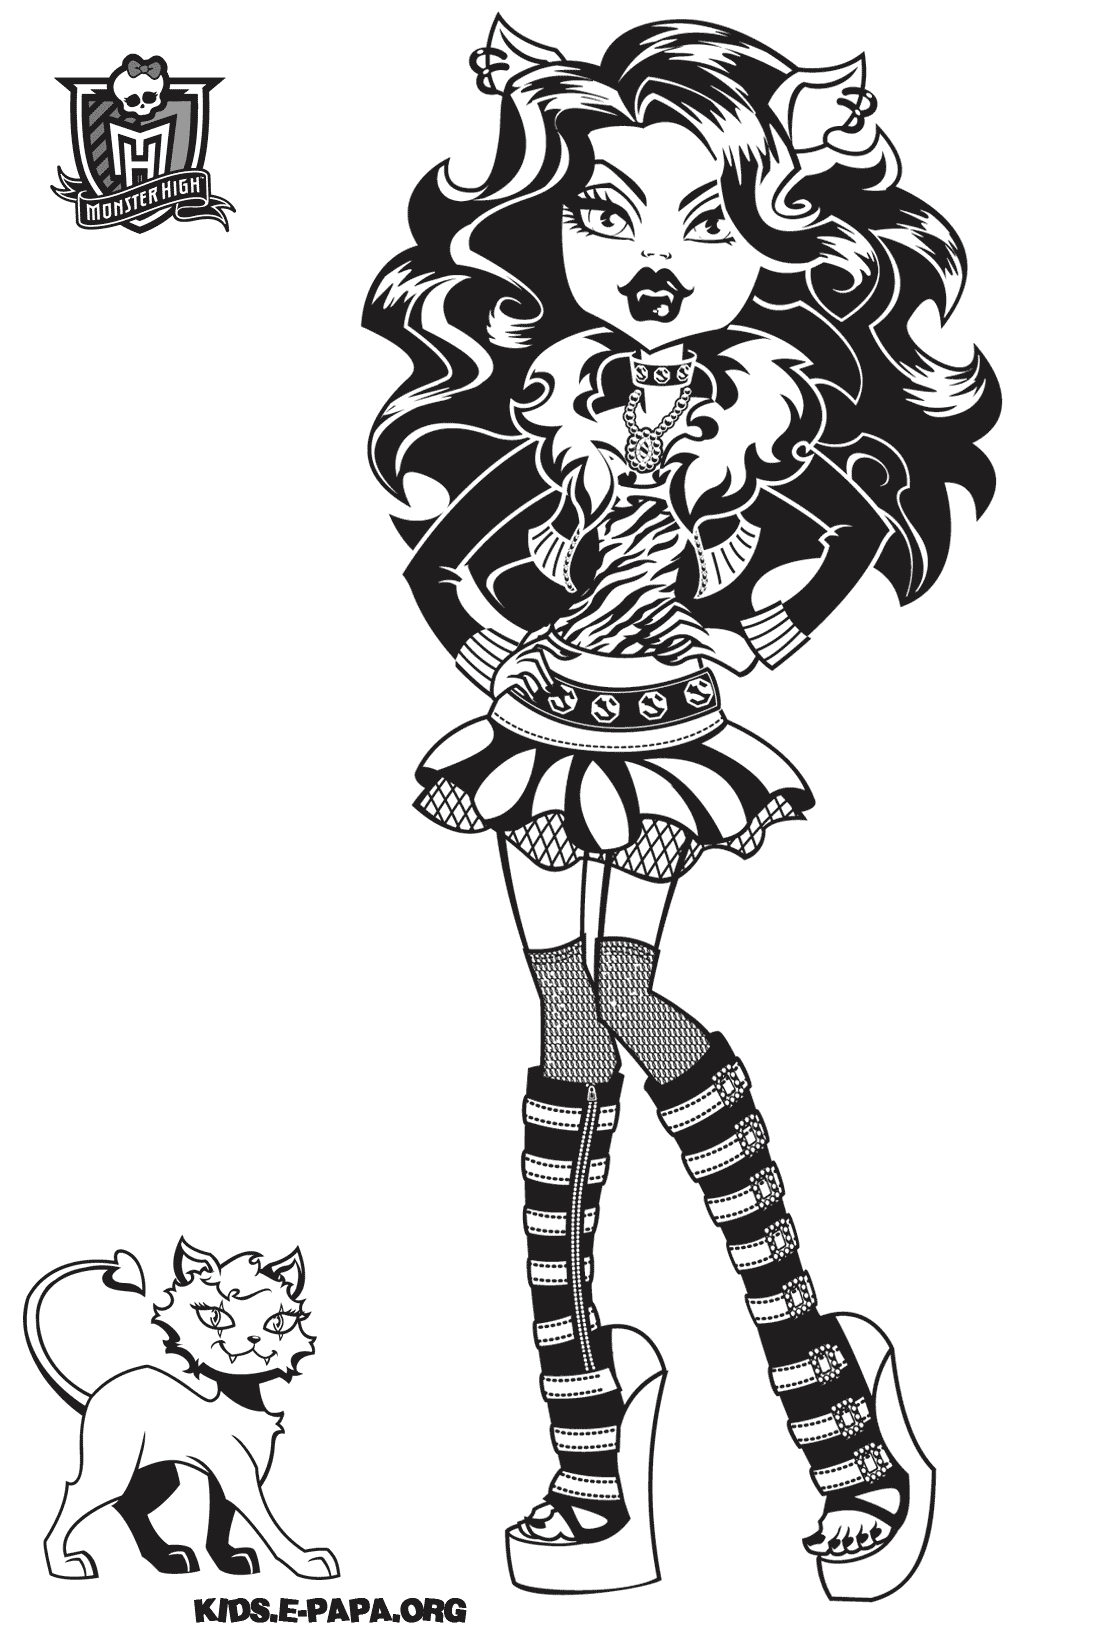 monster high free printable coloring pages coloring pages monster high page 2 printable coloring free pages printable coloring high monster